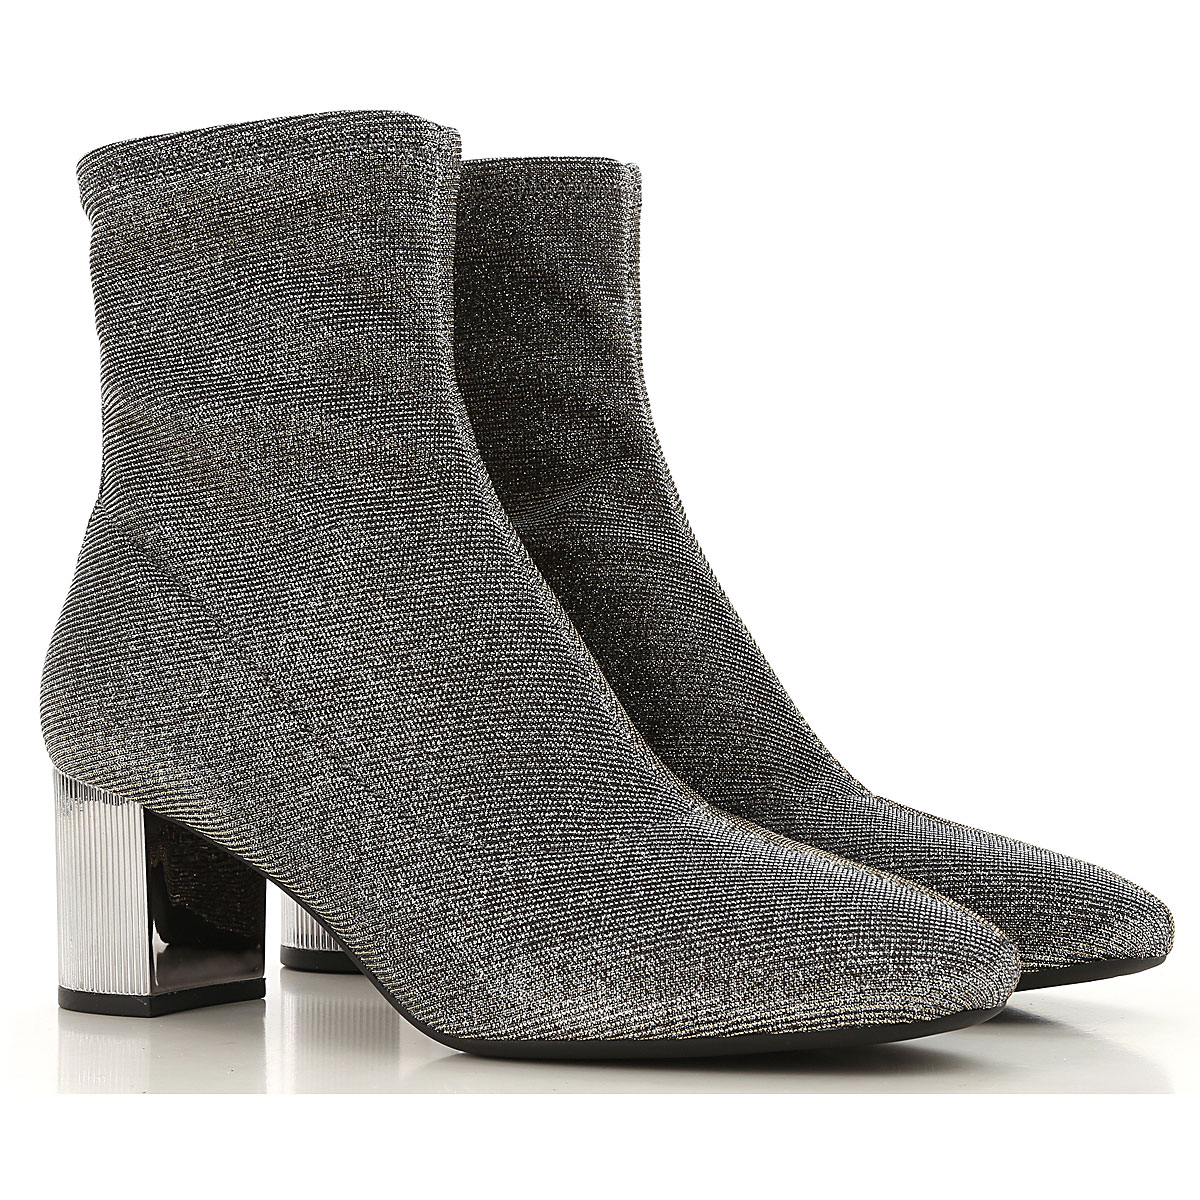 Michael Kors Boots for Women, Booties On Sale in Outlet, Silver, Fabric, 2019, 6 8